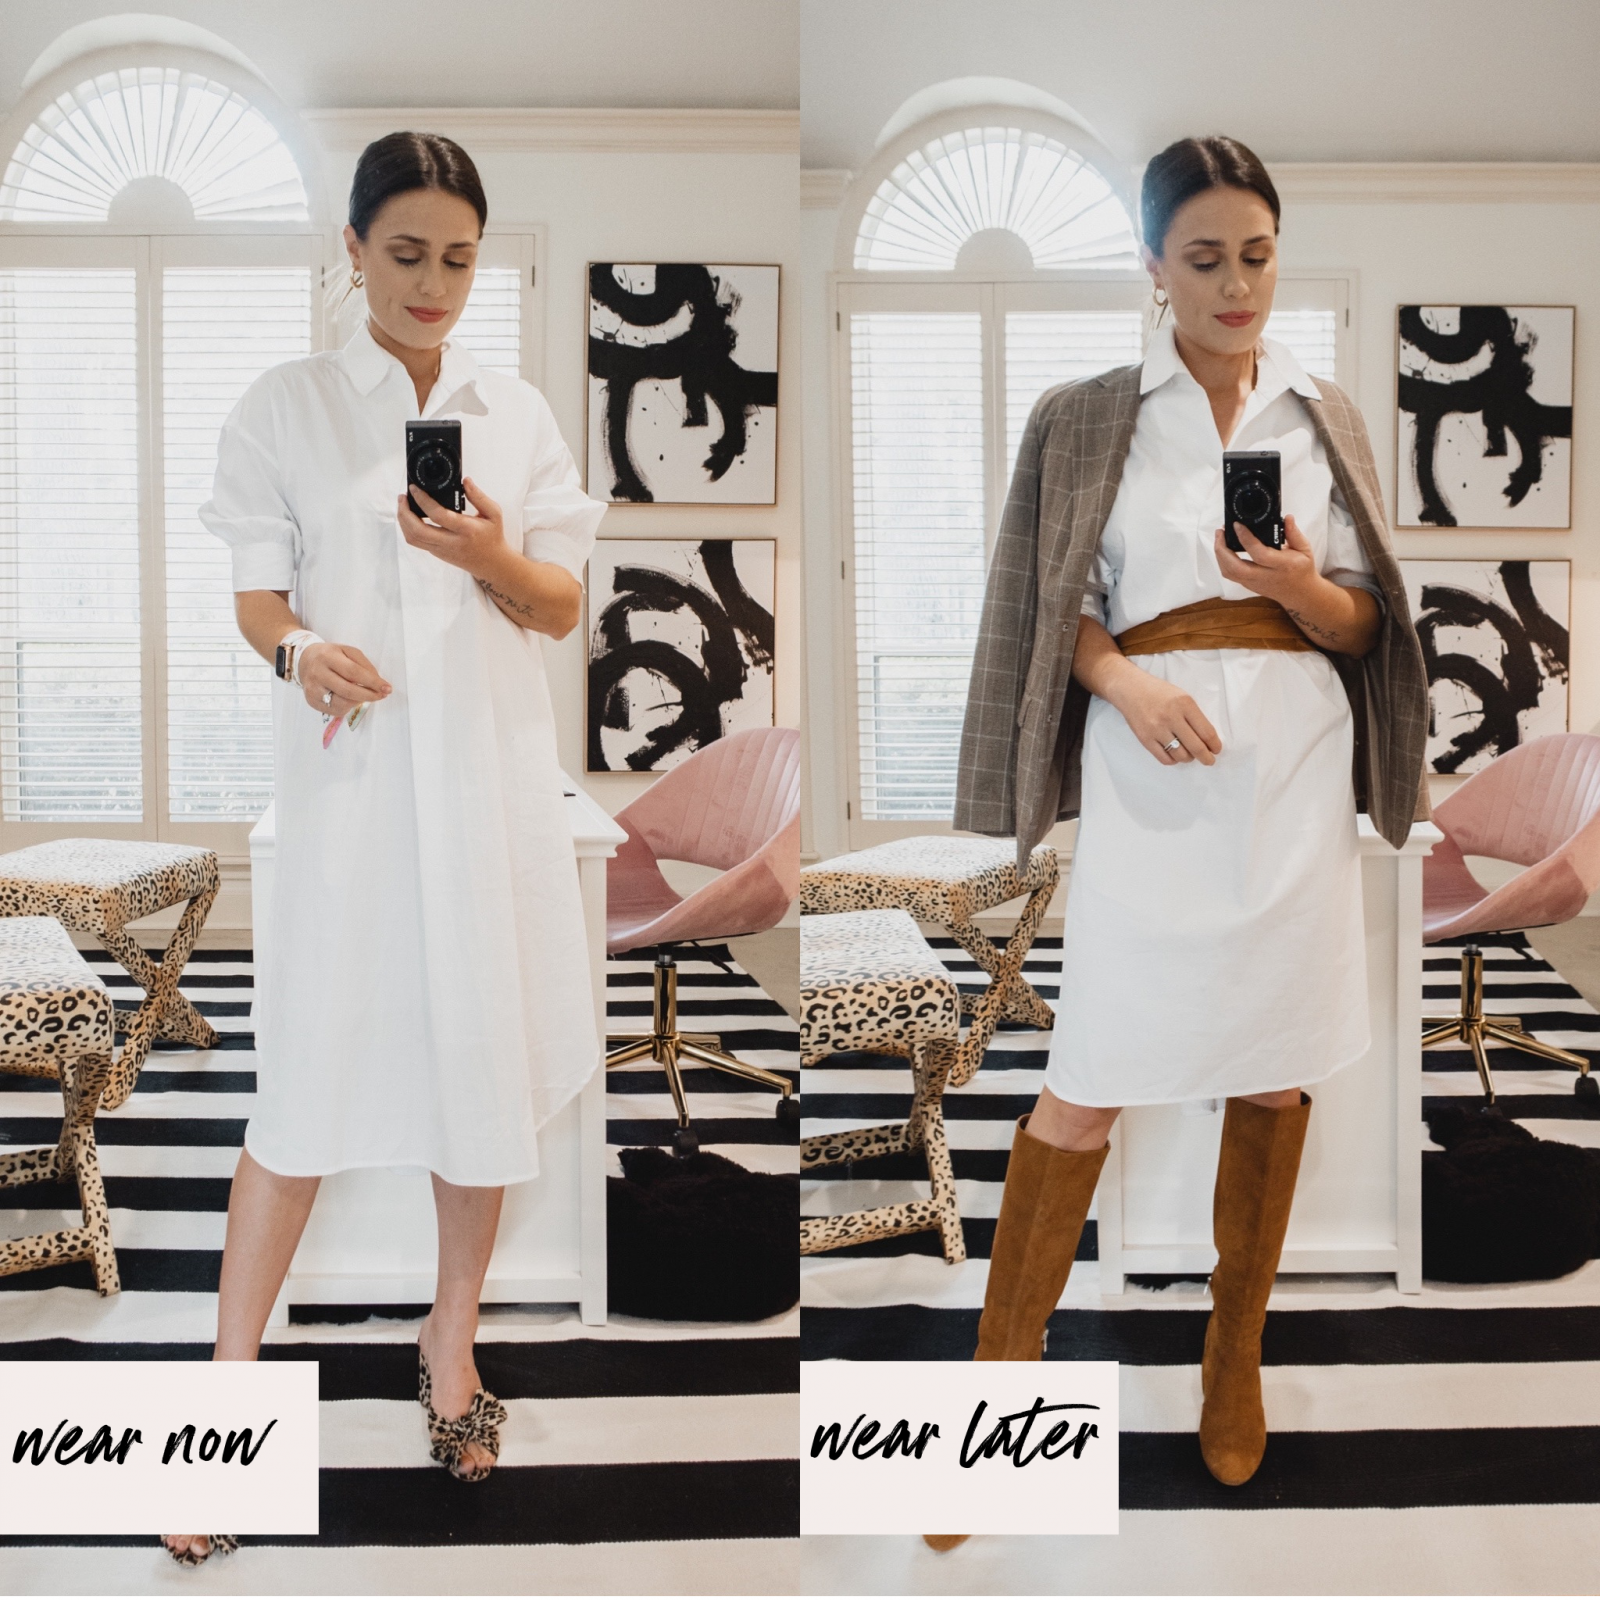 Elly Brown shows how to wear a white dress in the fall with knee hight boots a waist belt and blazer